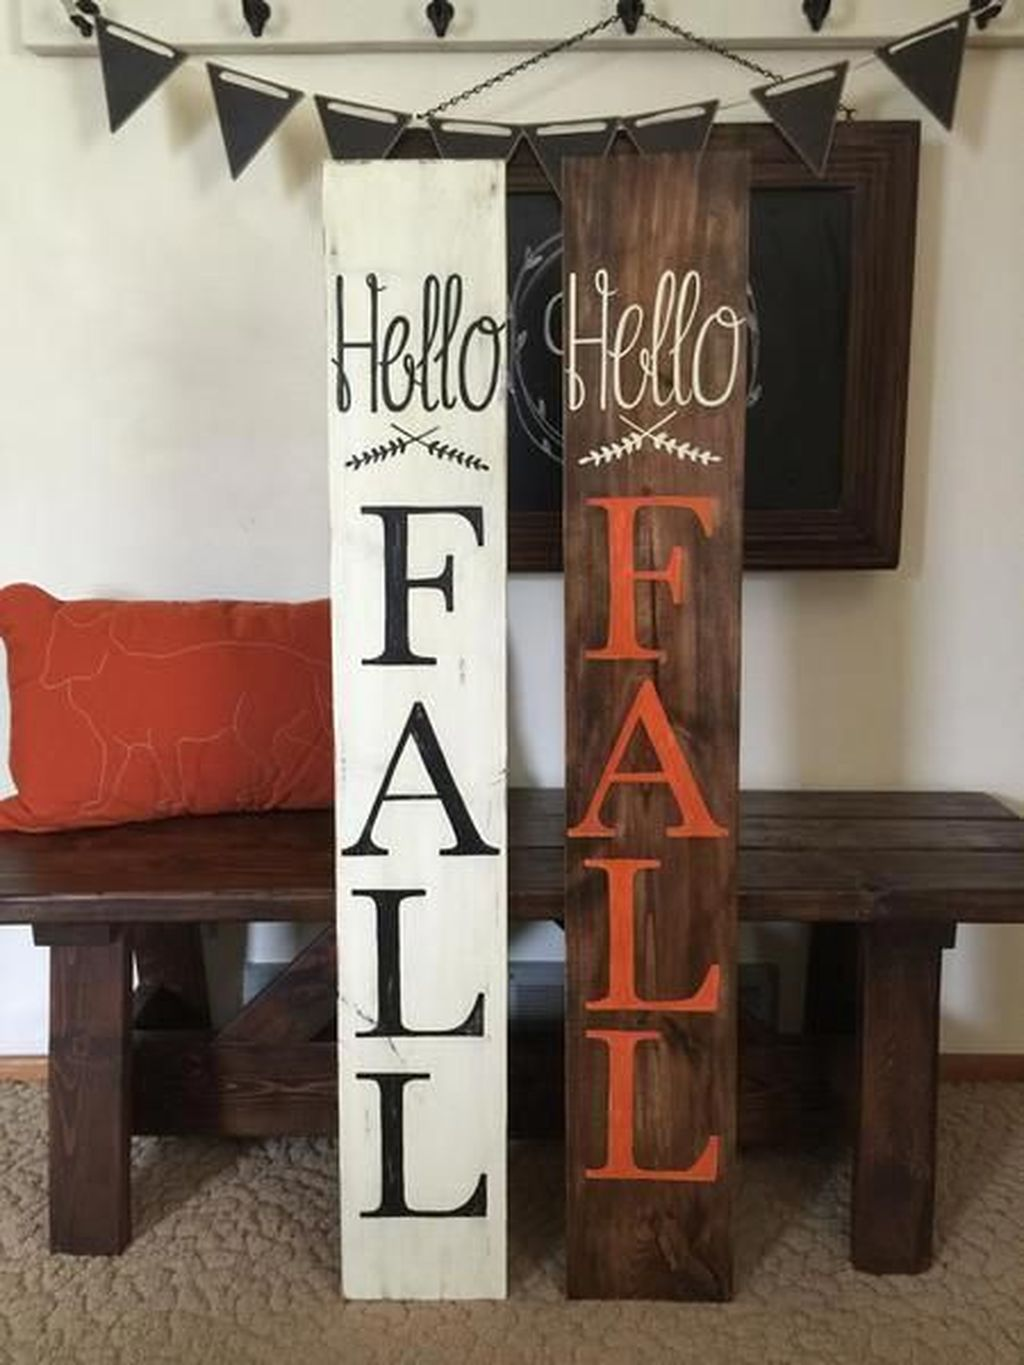 Inspiring Fall Pallet Signs Design Ideas For Your Home Decor 24